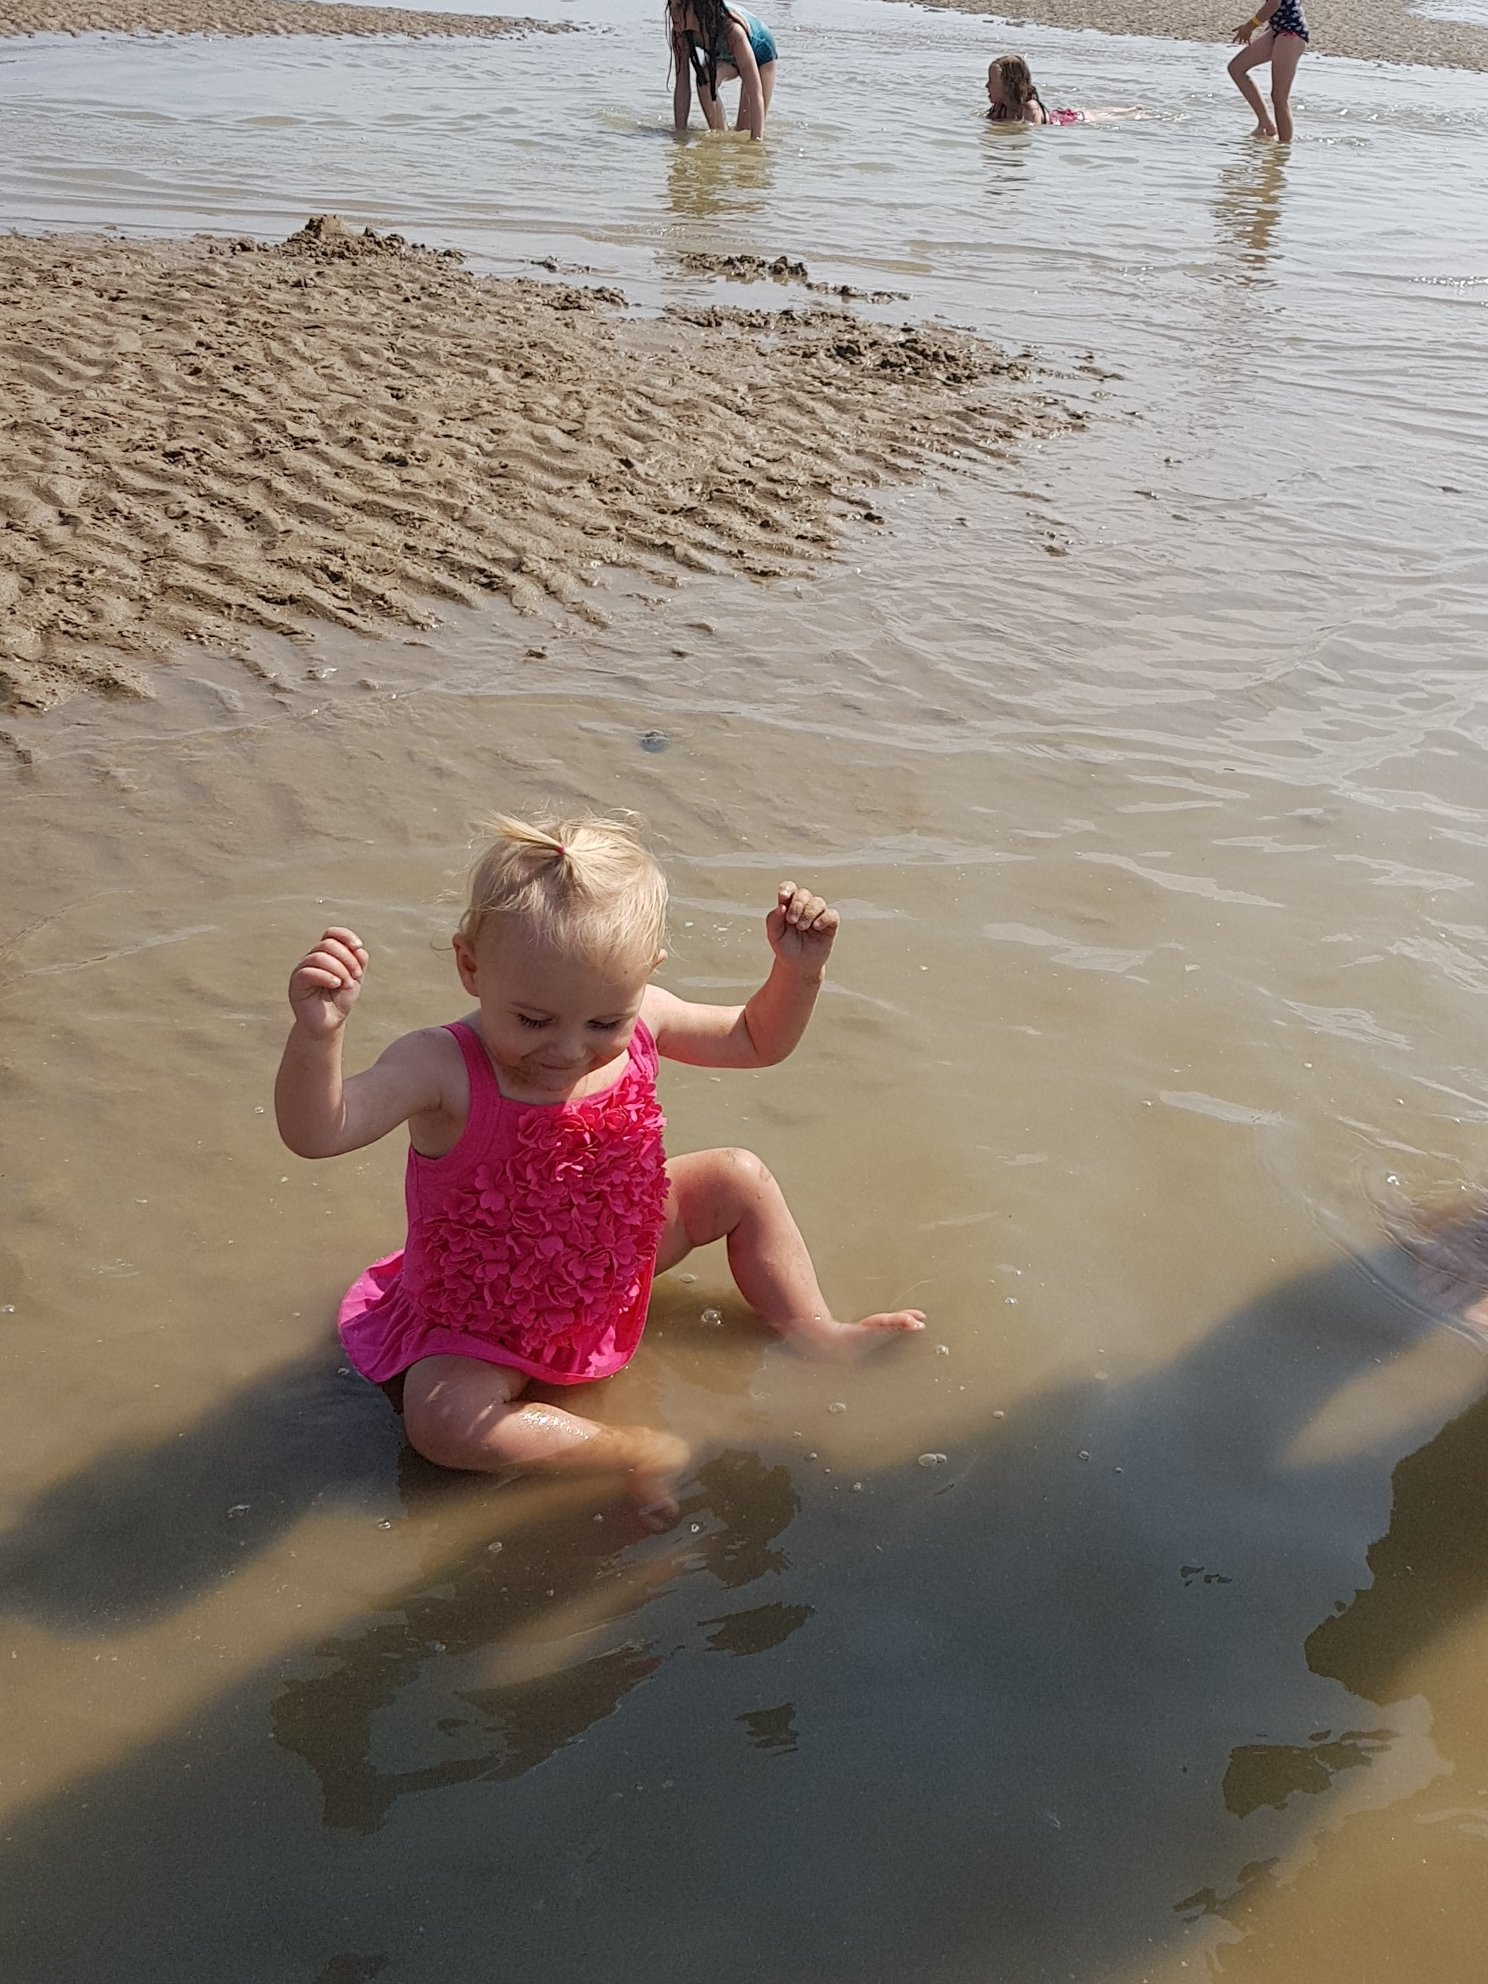 little girl playing in pool of water at seaside